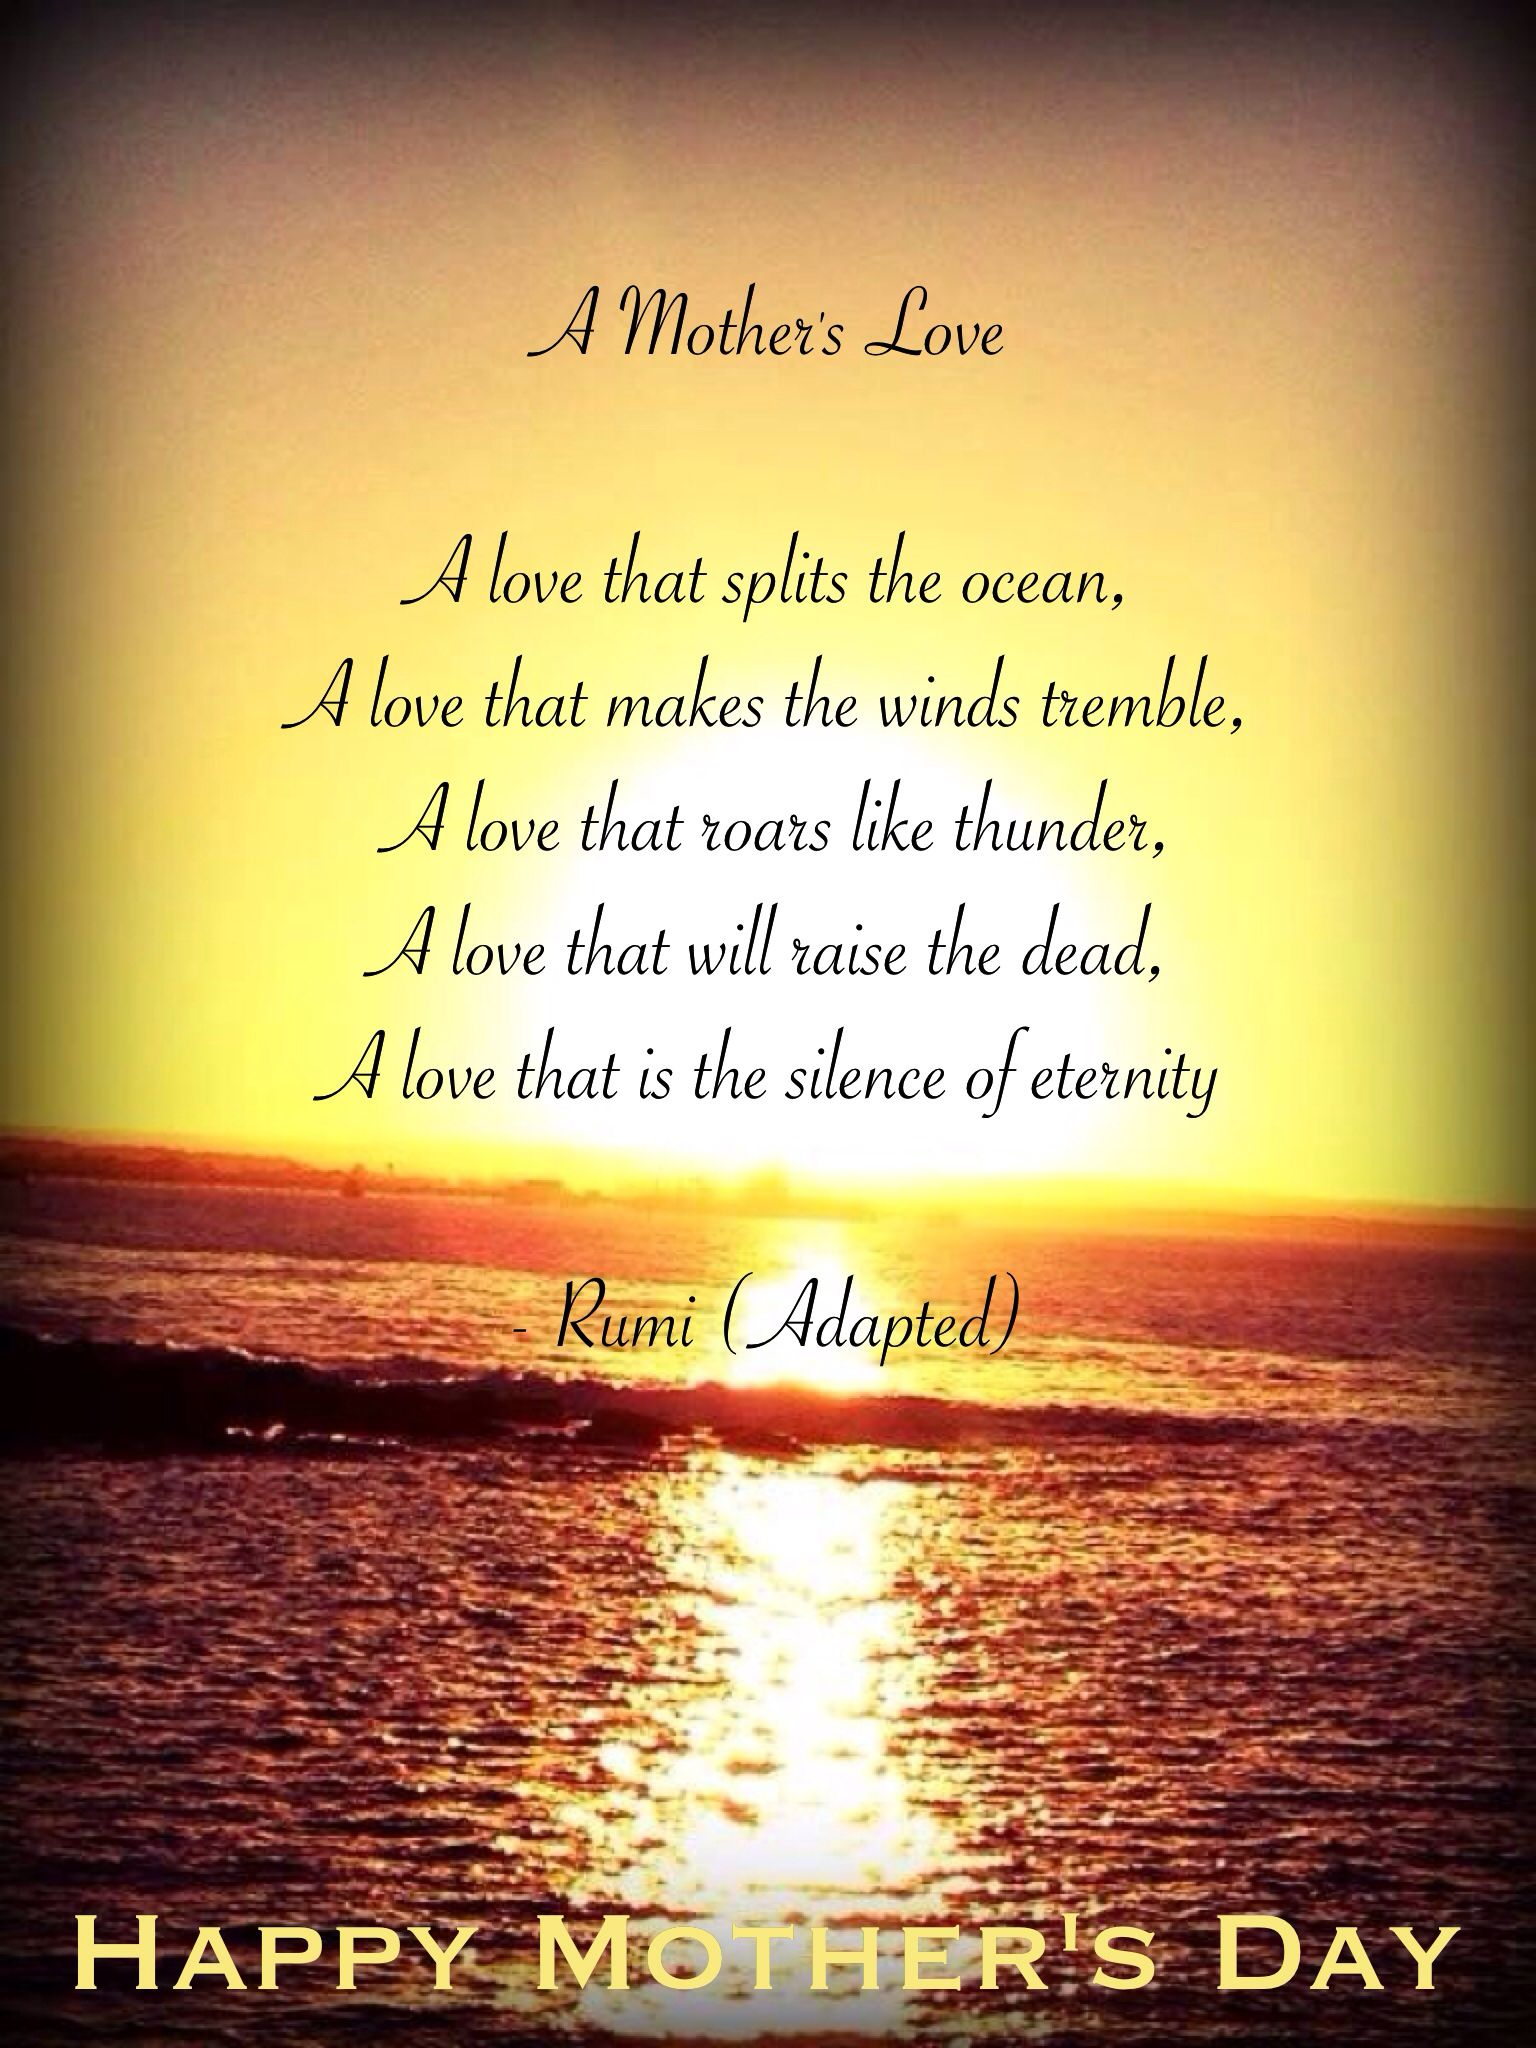 Mothers Love Quotes Mother's Love  Quotes  Pinterest